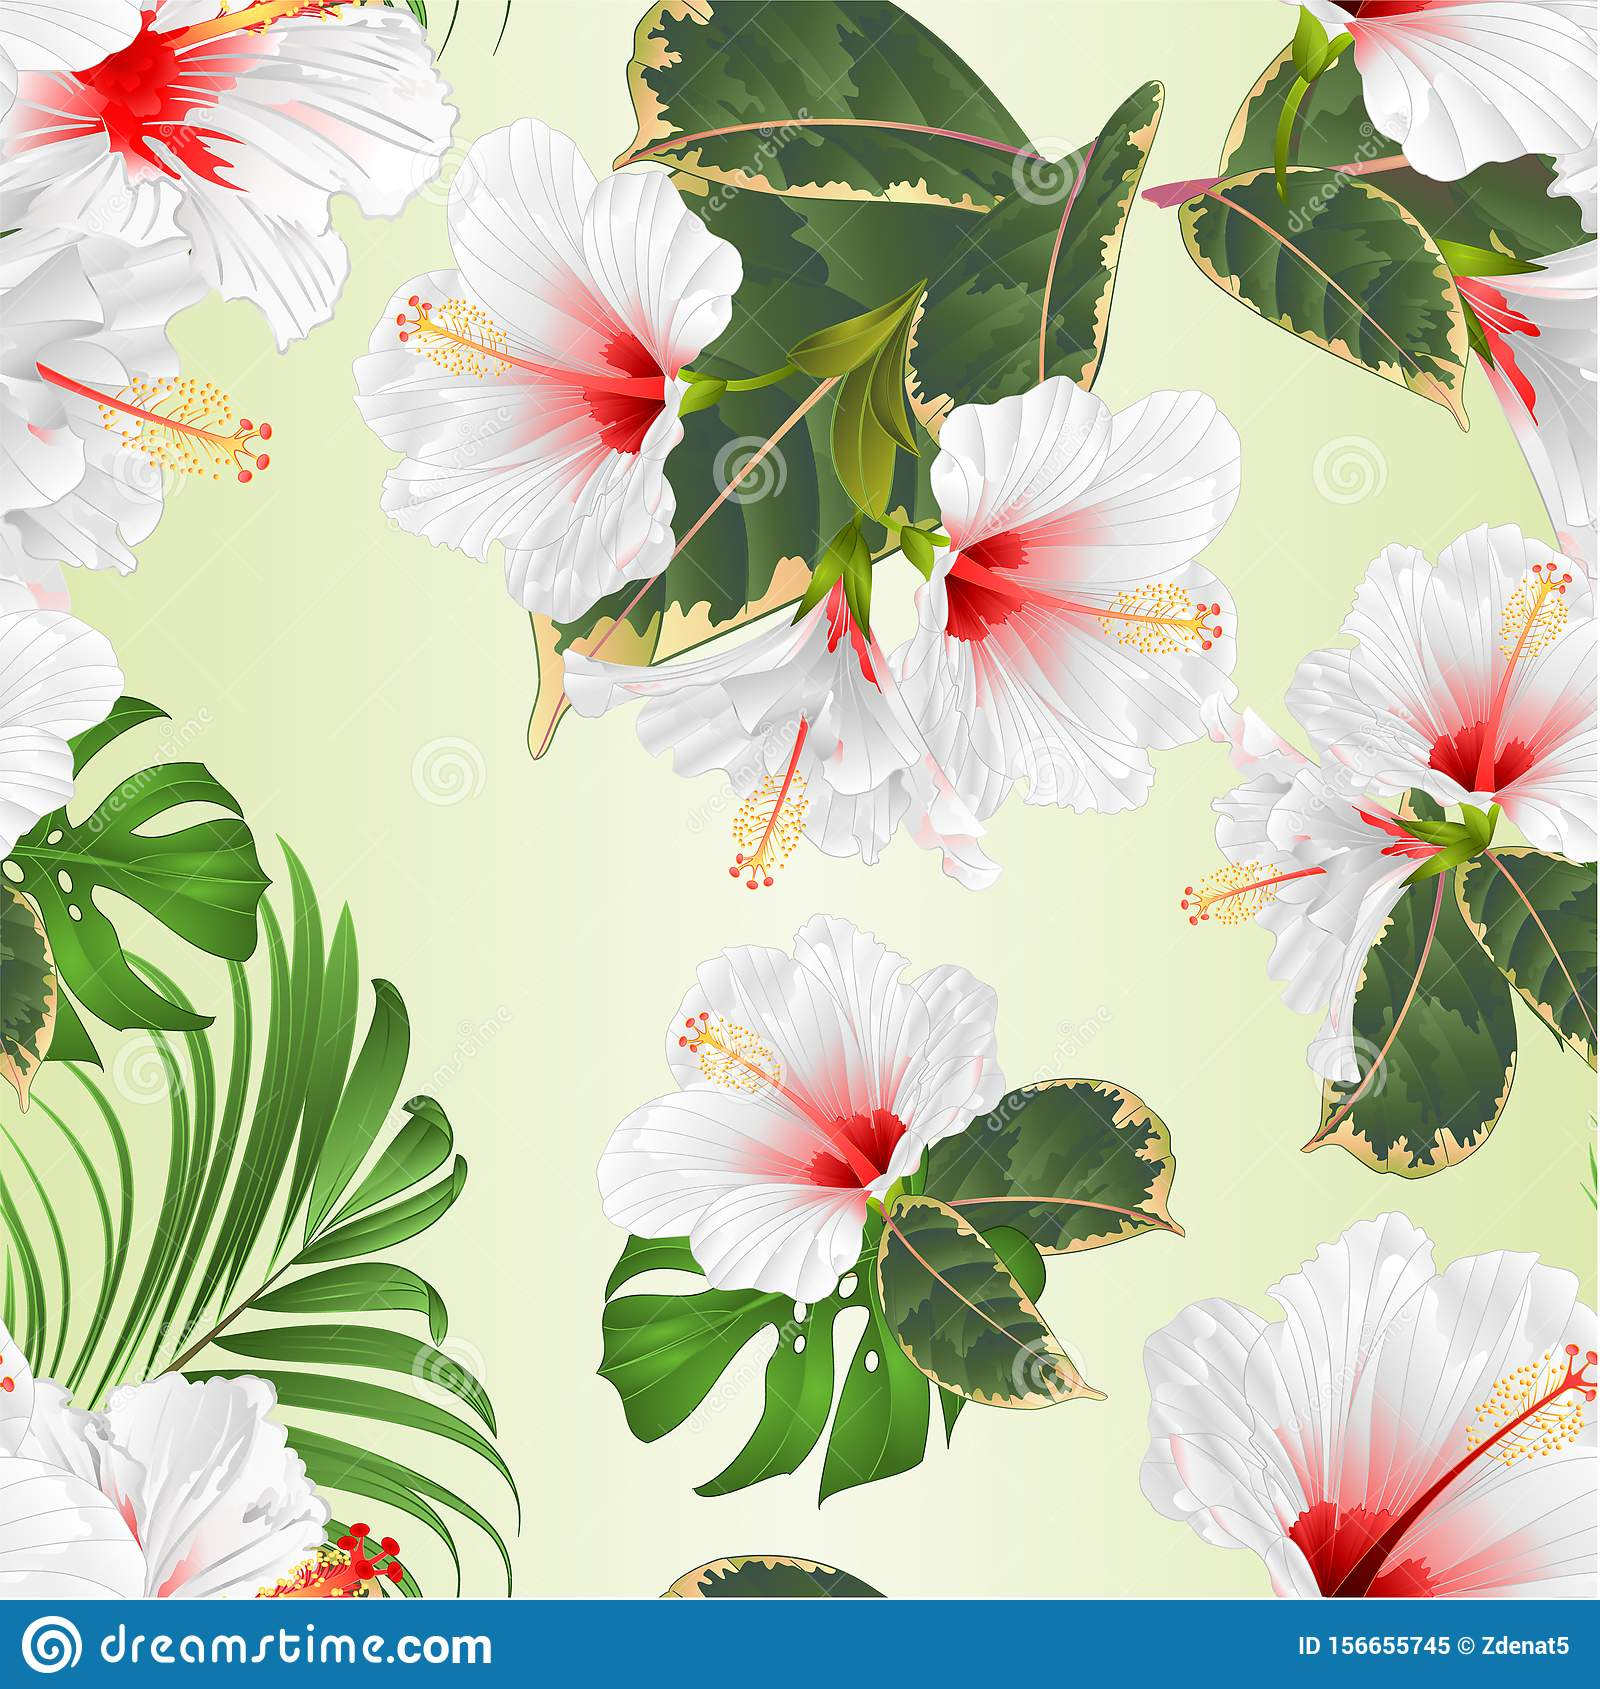 Tropical Flowers Floral Arrangement With White Hibiscus And Ficus Watercolor On A White Background Vintage Vector Illustration Stock Vector Illustration Of Hibiscus Bouquet 156655745